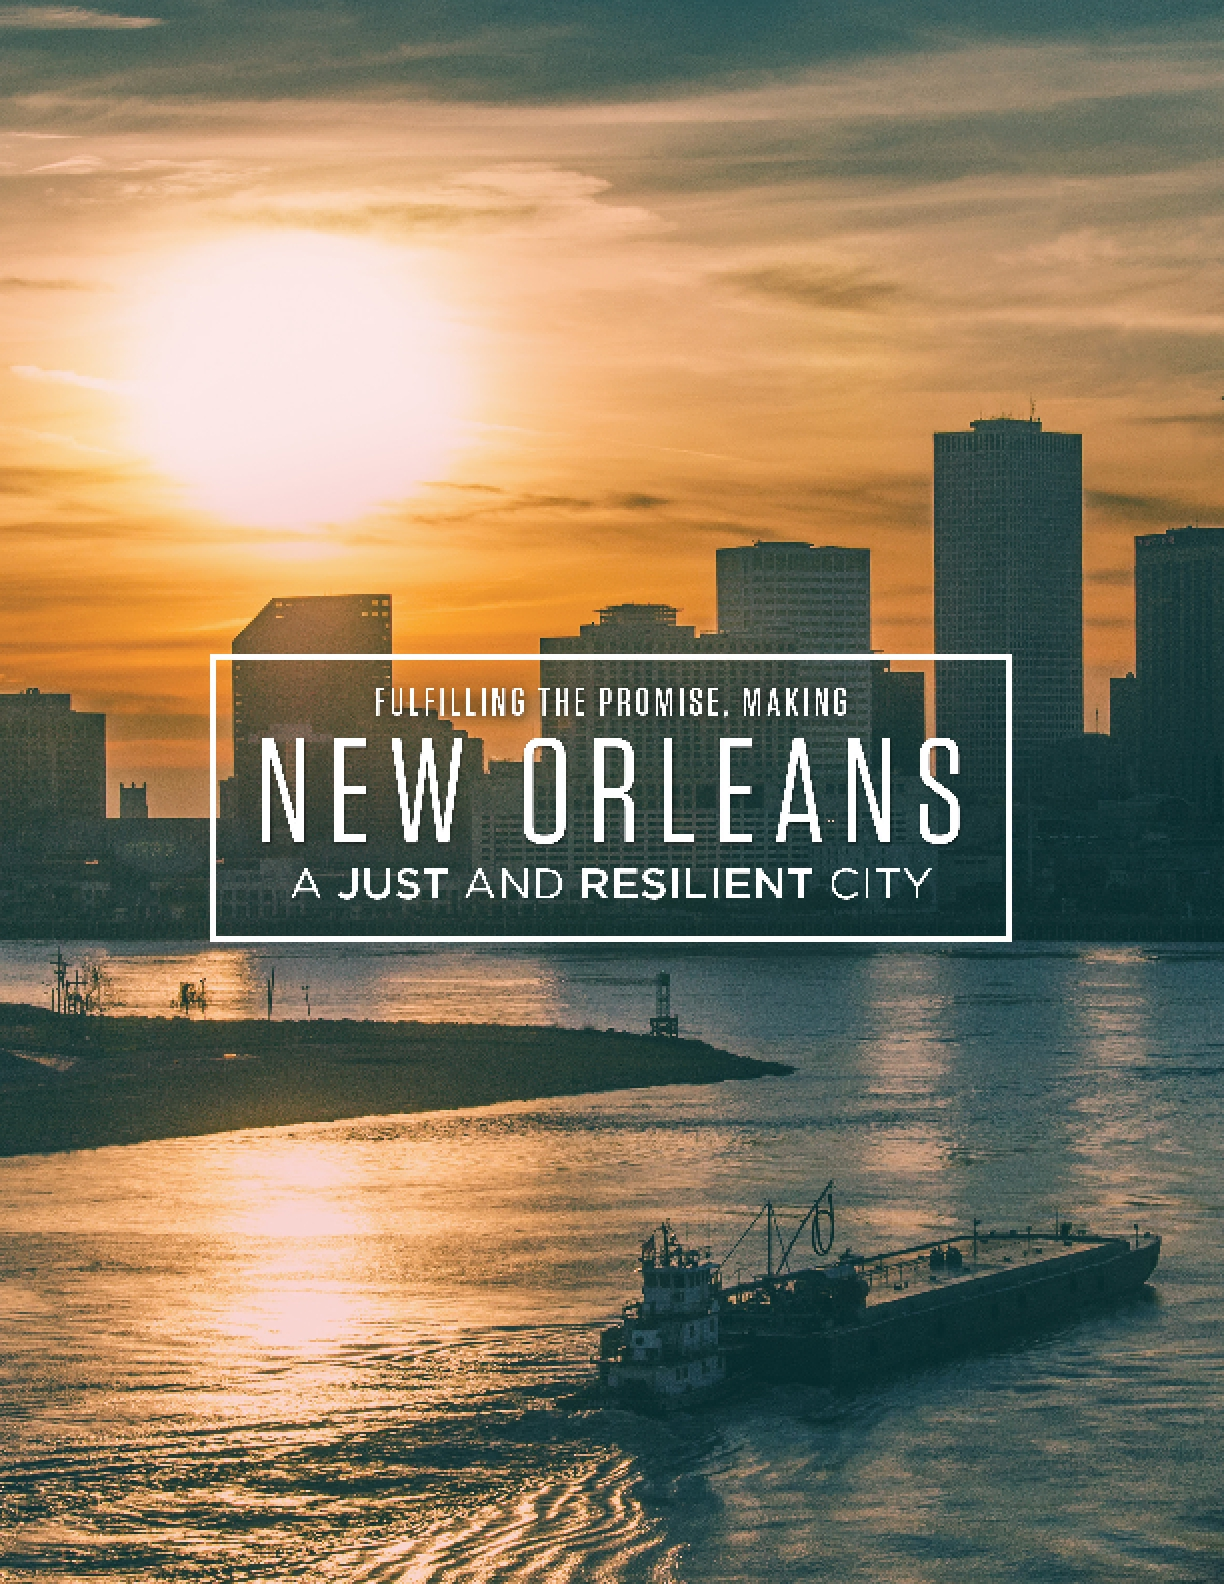 Fulfilling The Promise, Making New Orleans a Just and Resilient City